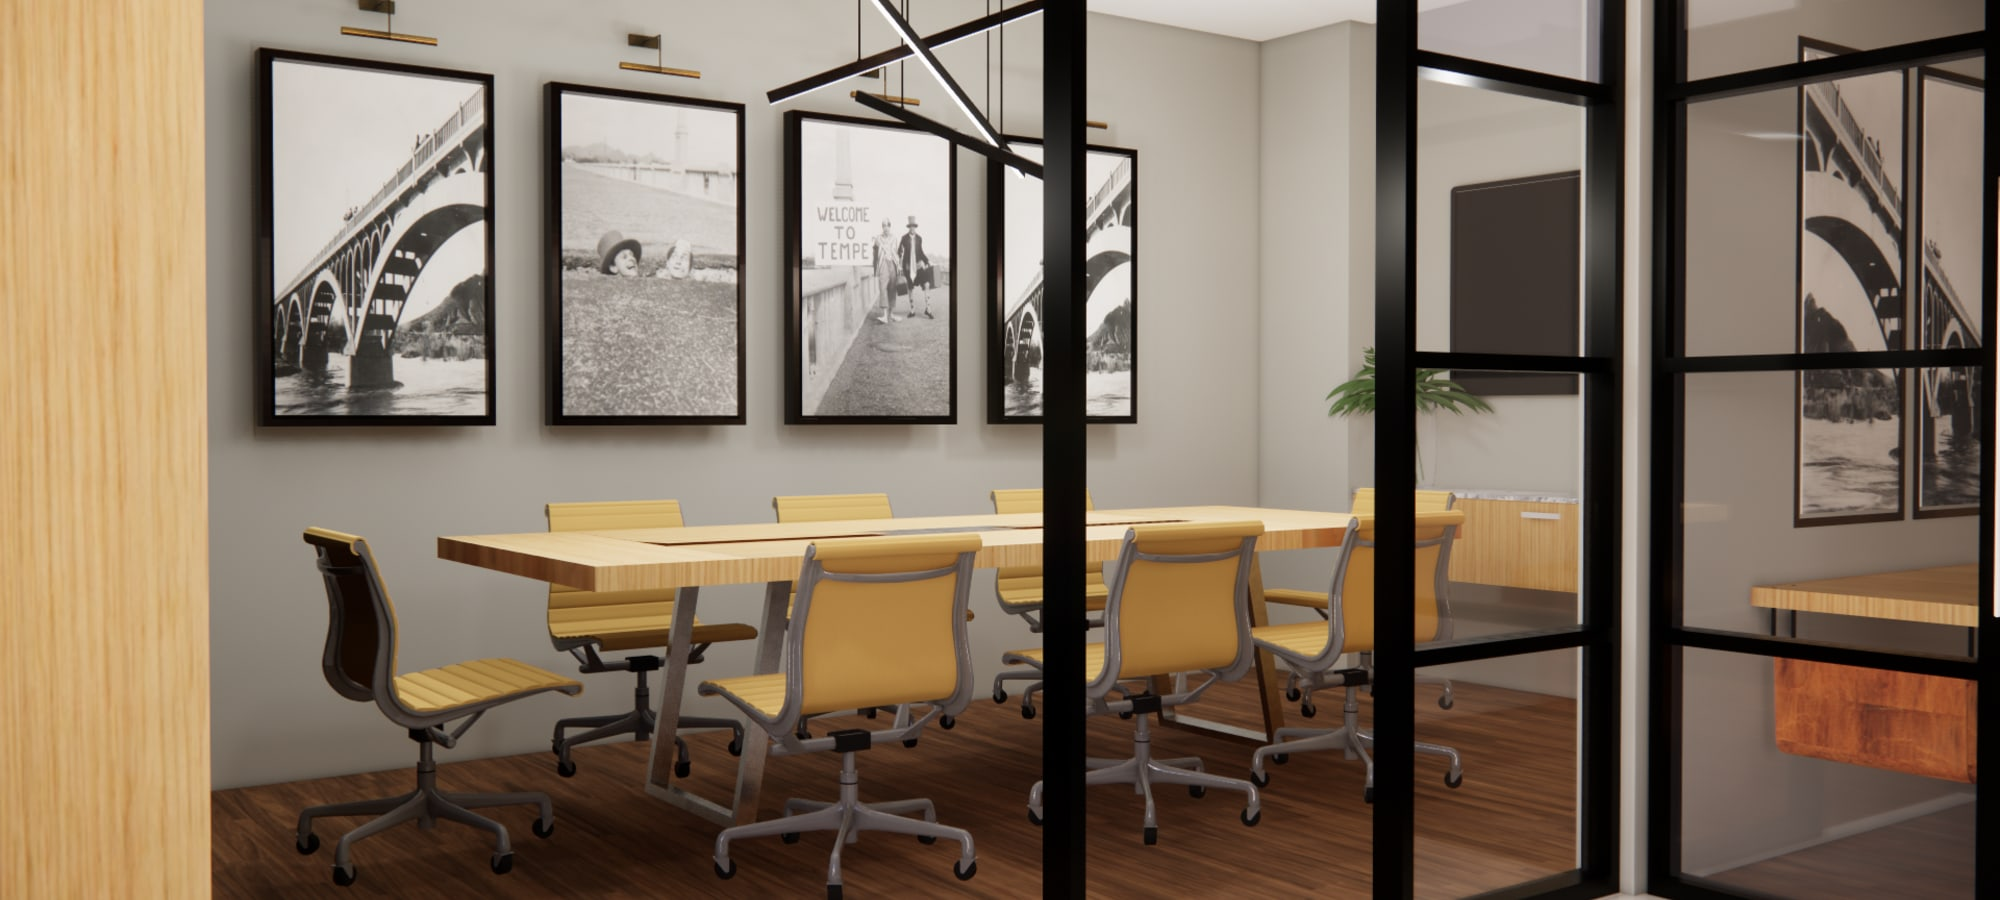 Rendering of conference room at The Piedmont in Tempe, Arizona